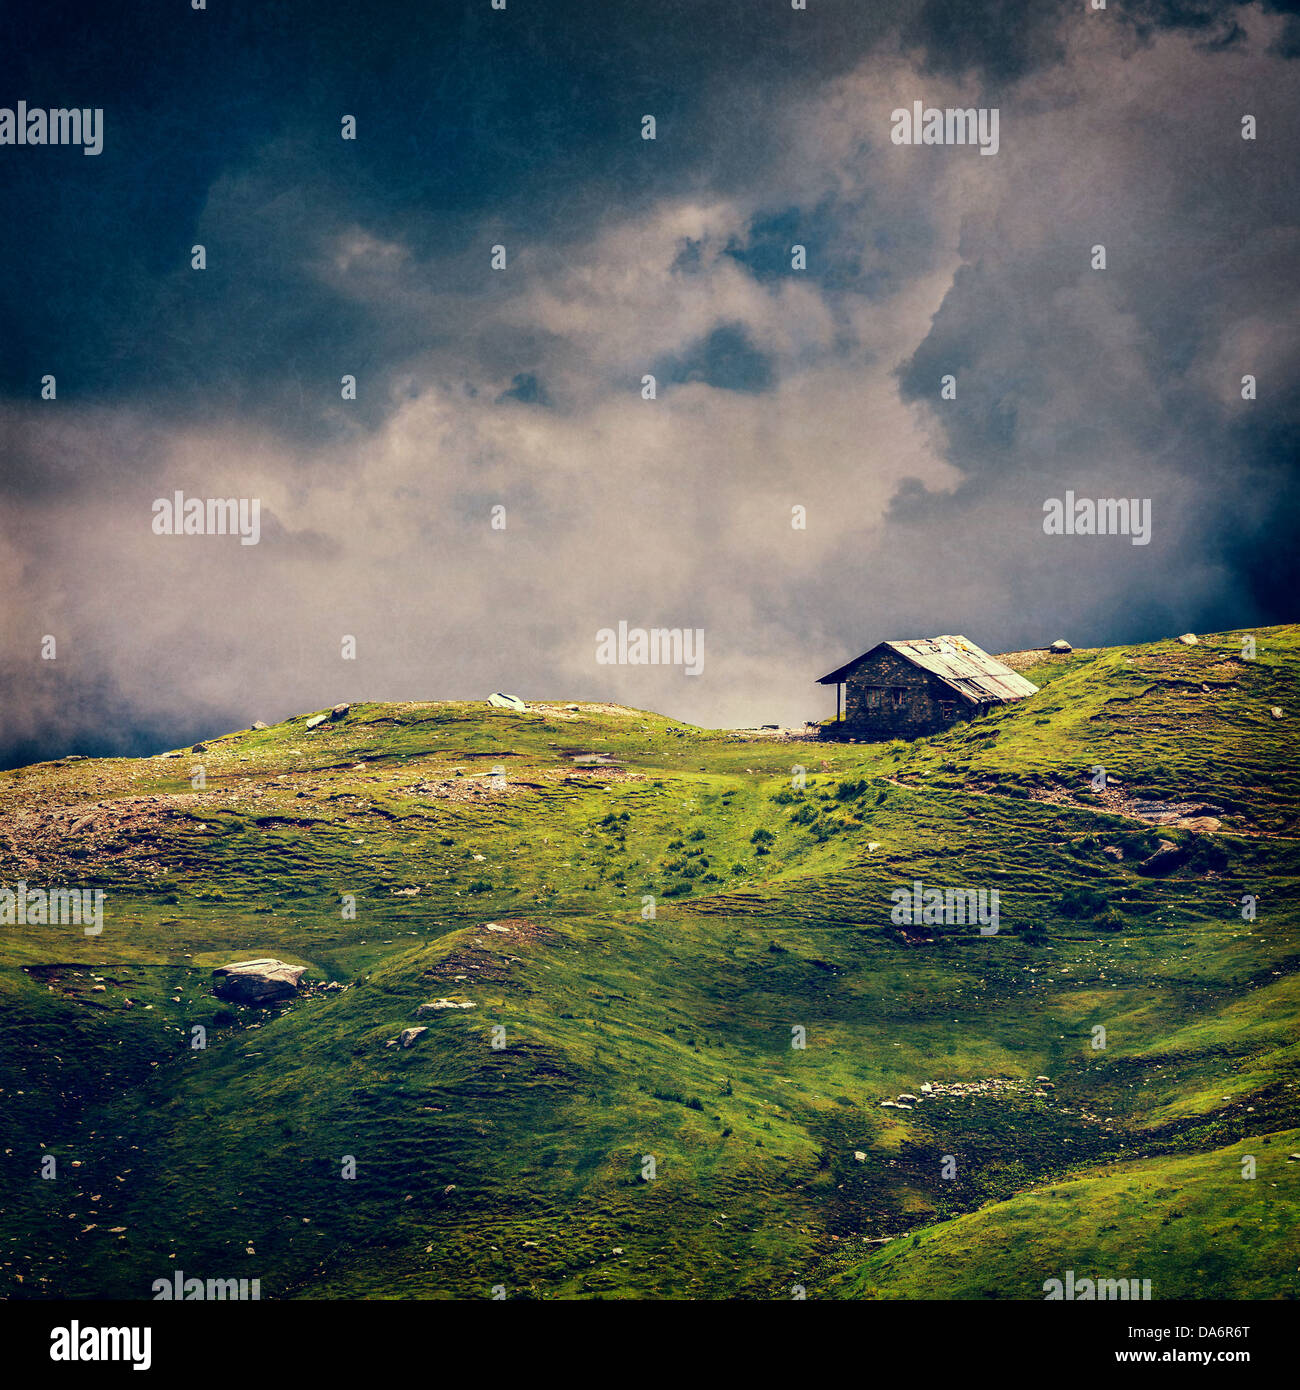 serenity serene lonely scenery background concept - old house in